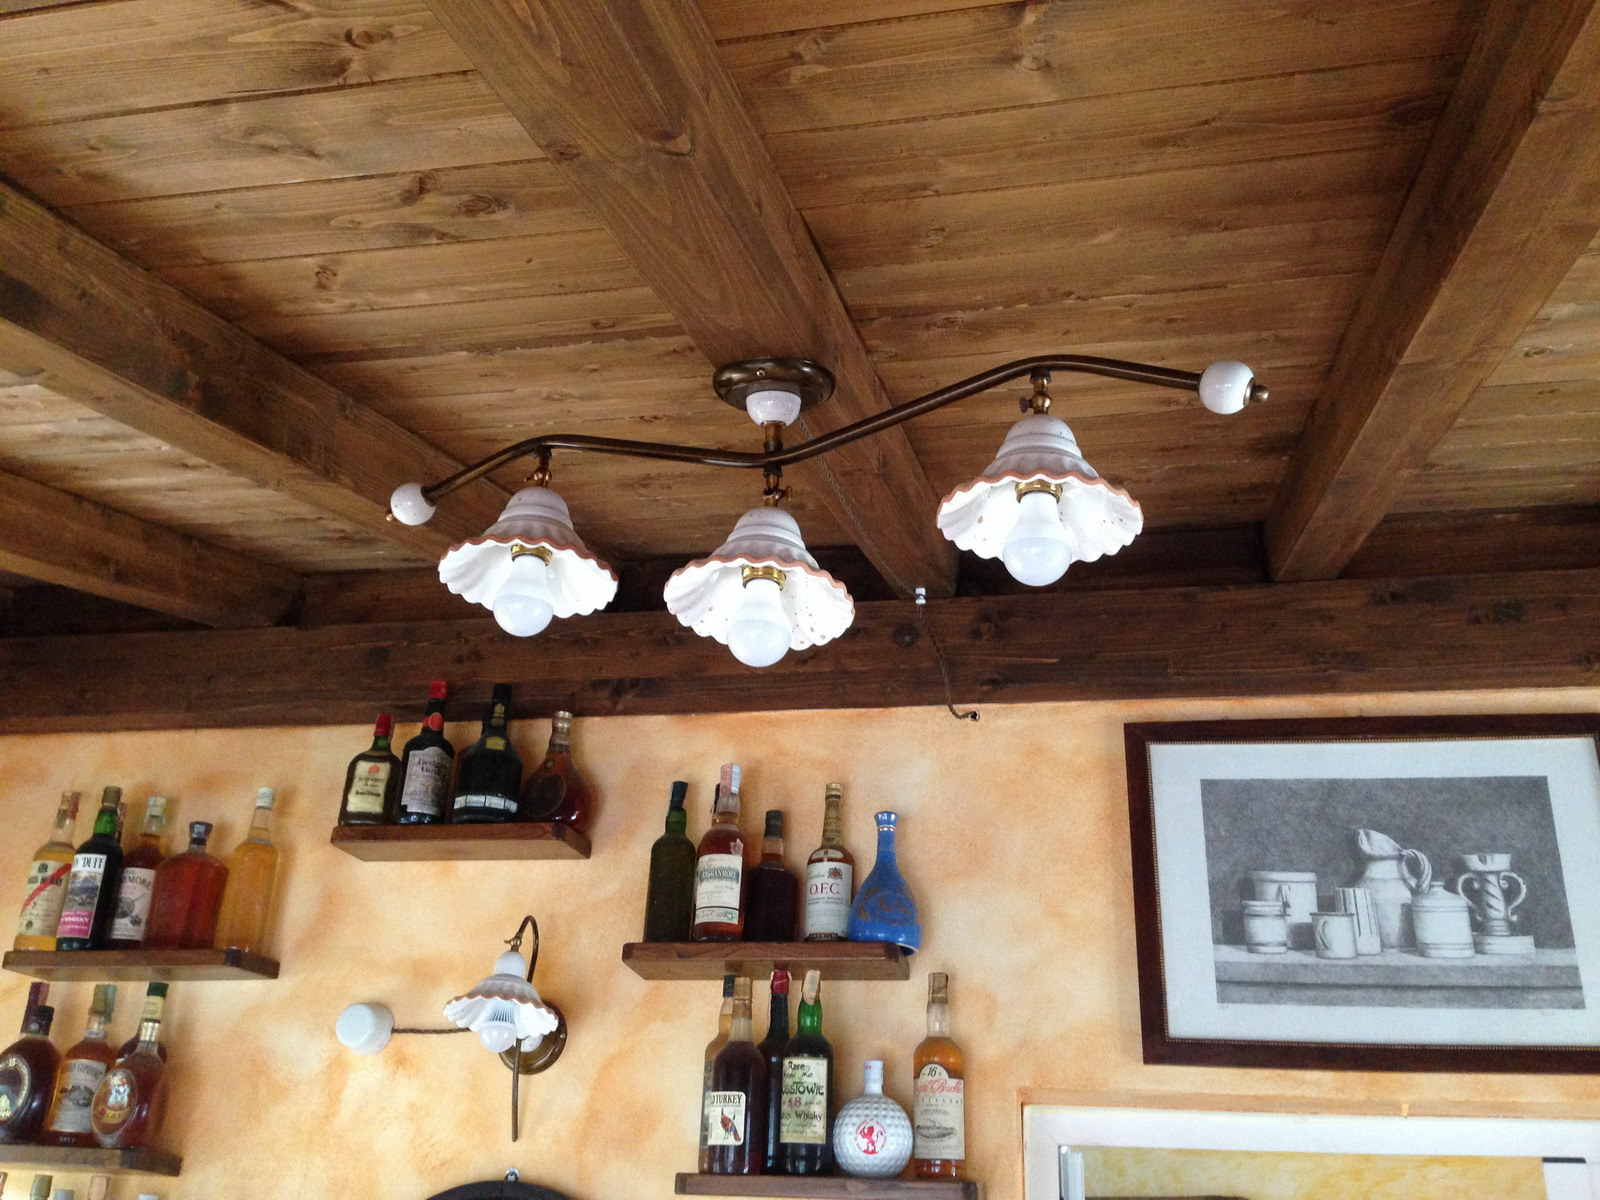 Taverna illuminazione lampadari e applique in ceramica for Accessori lampadari